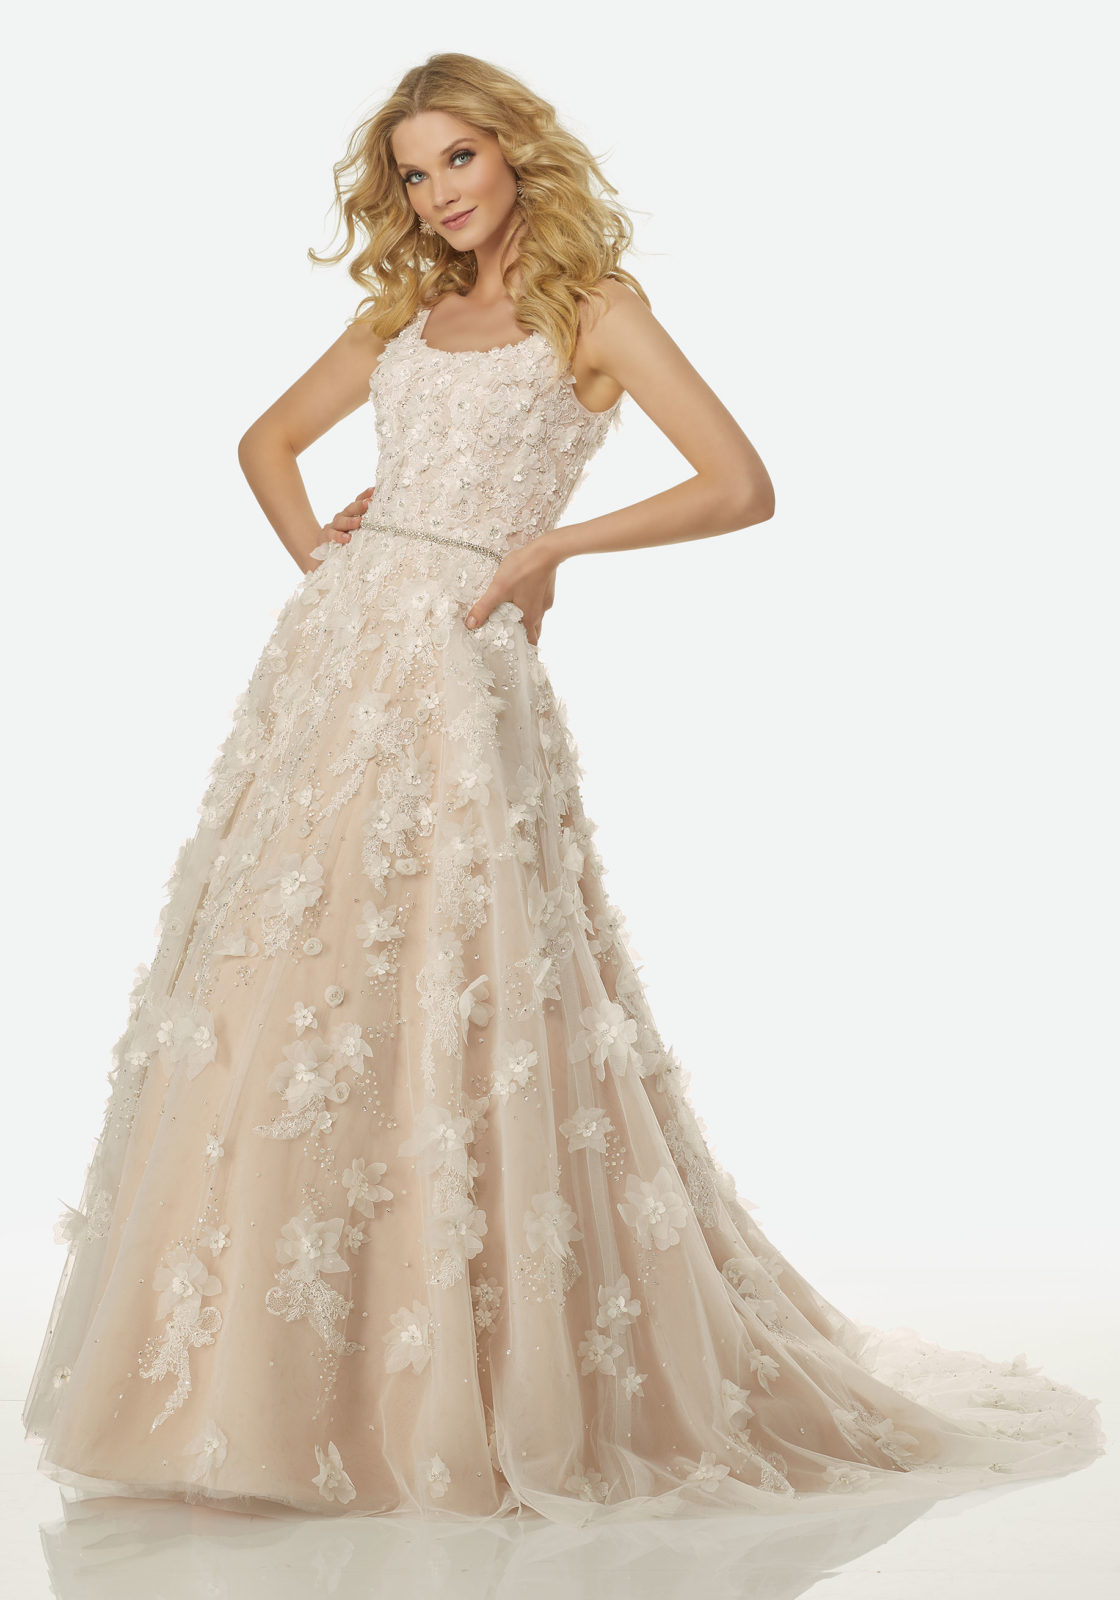 Trouwjurk Blush.Randy Fenoli Bridal Trouwjurken New Styling